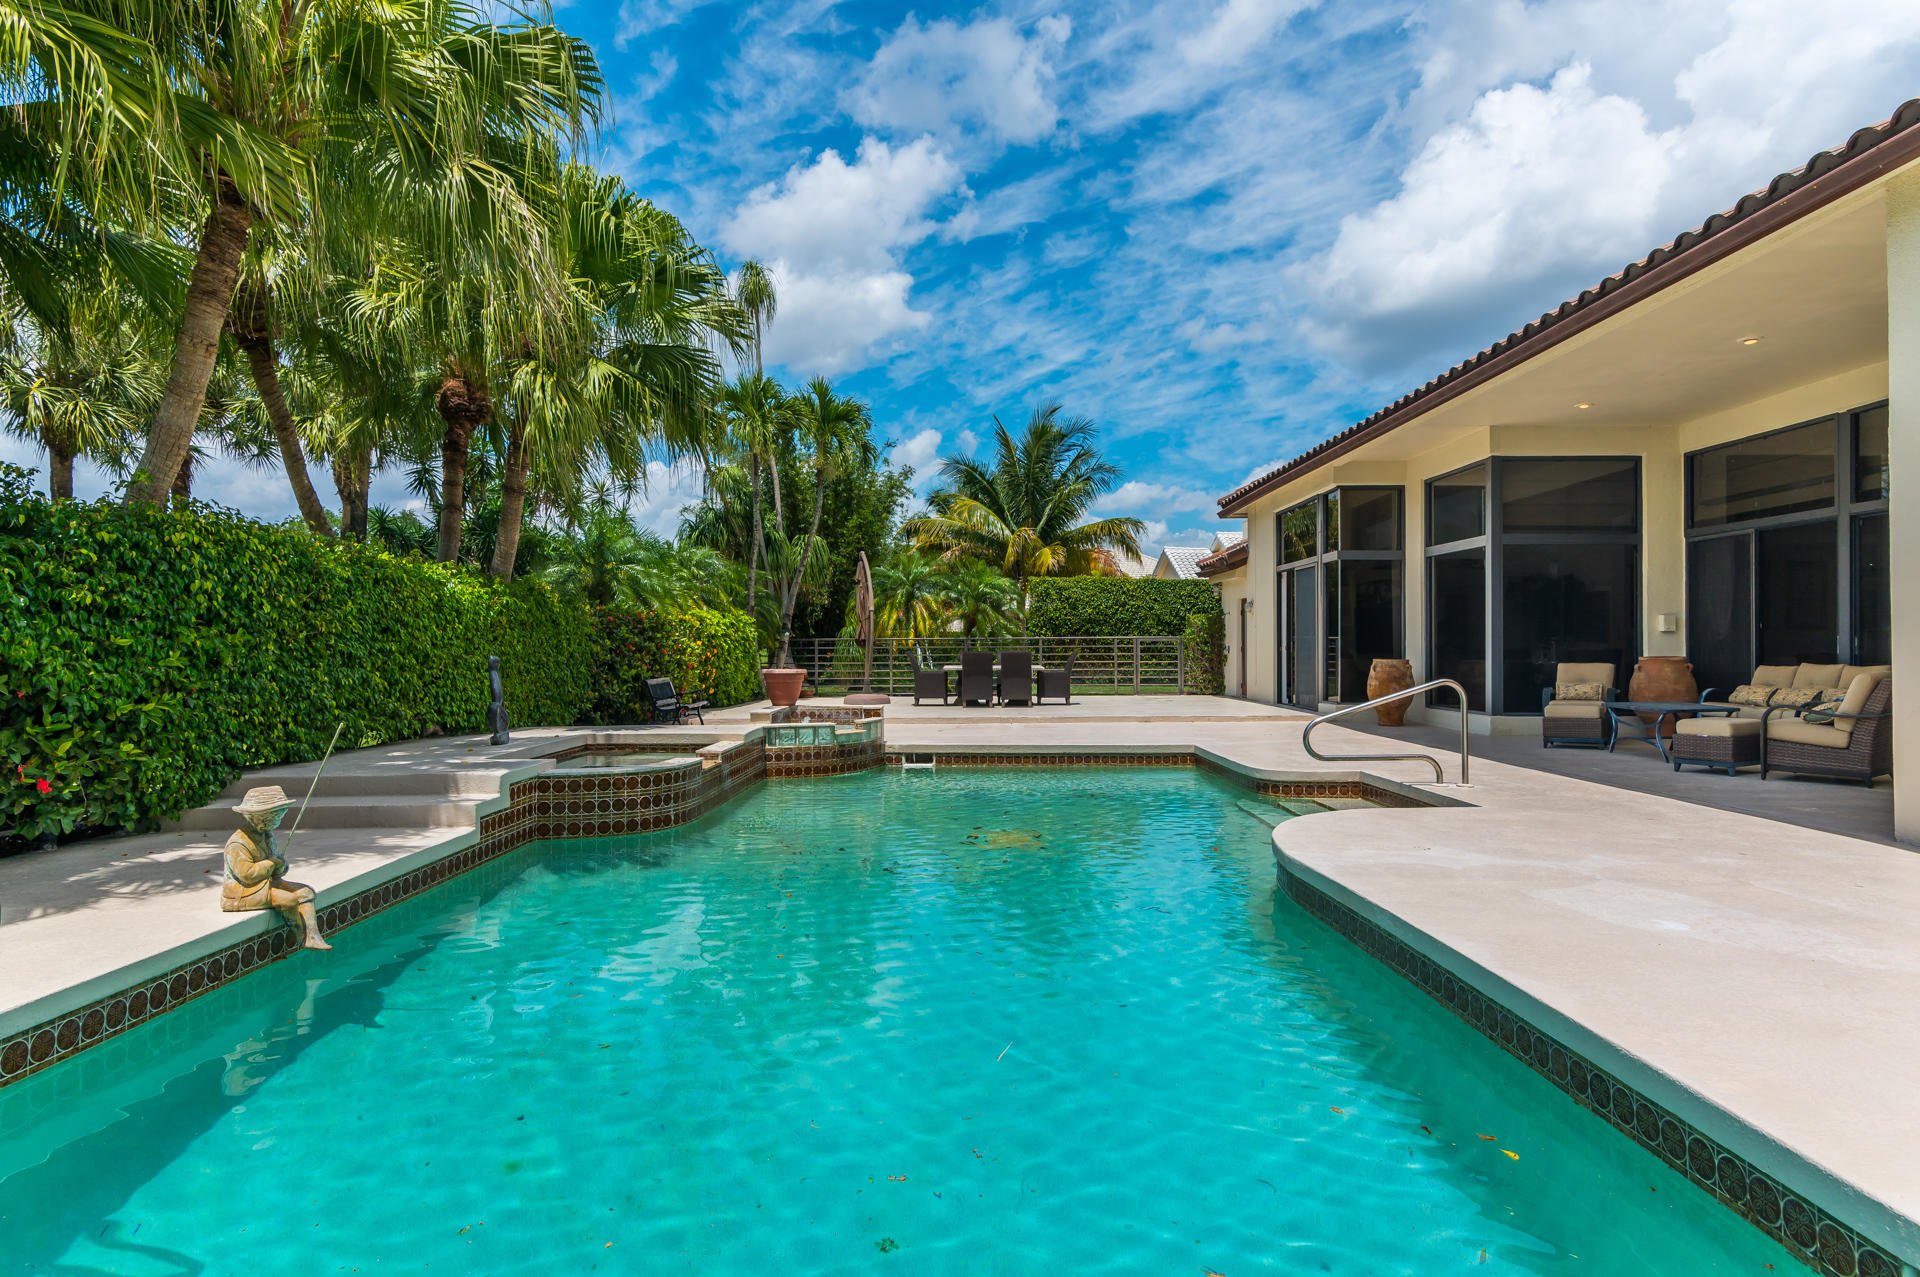 BOCAIRE COUNTRY CLUB HOMES FOR SALE